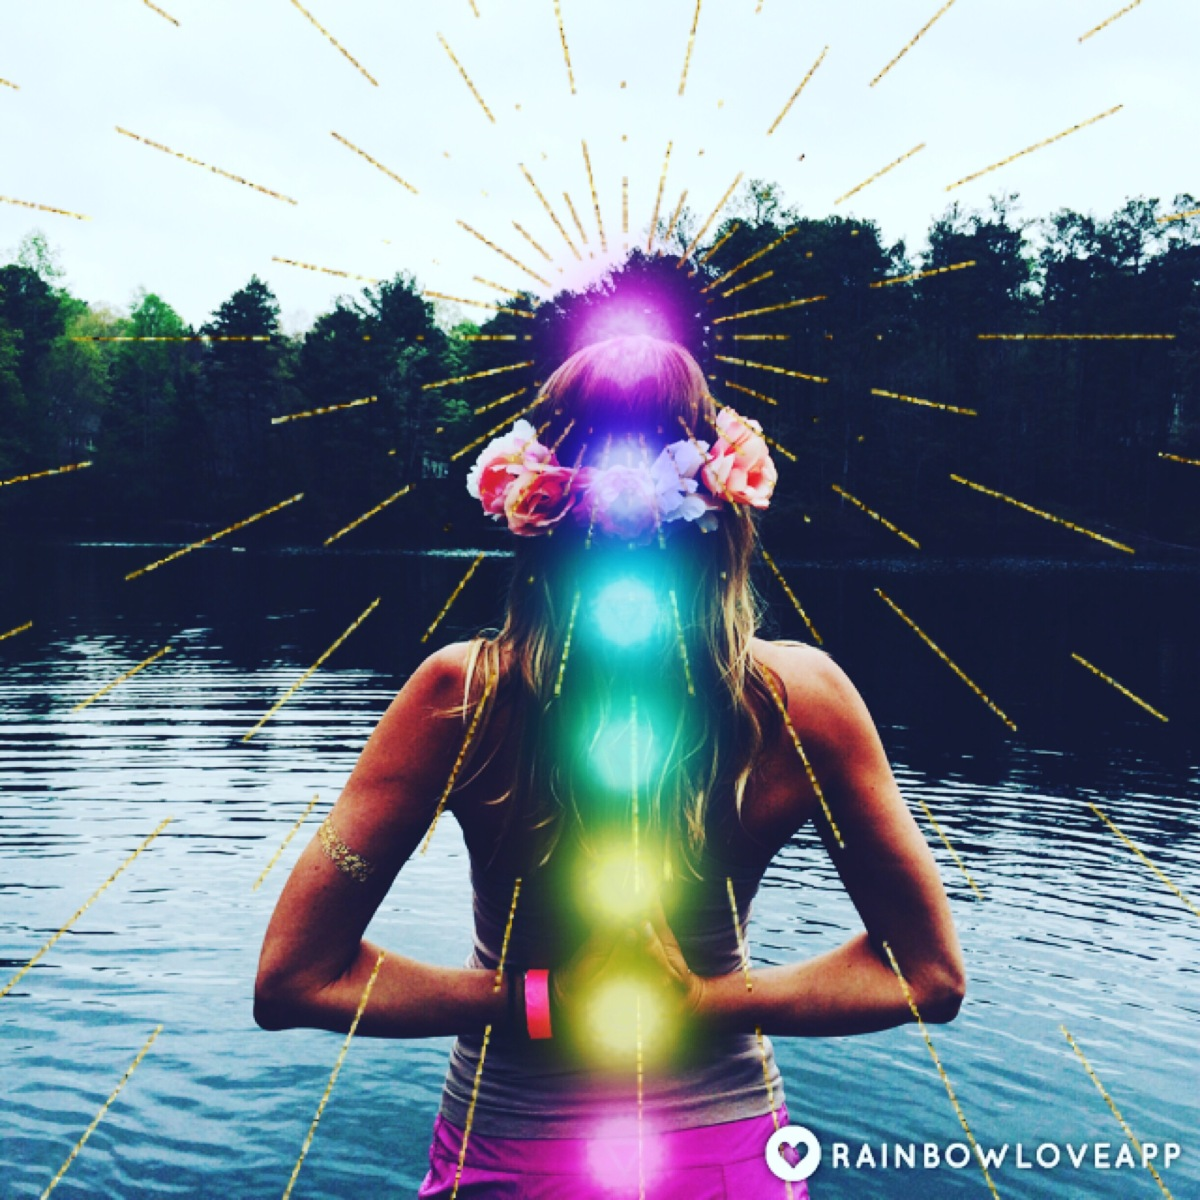 rainbow-love-app-chakras-photo-art-add-chakra-aura-to-my-yoga-photos